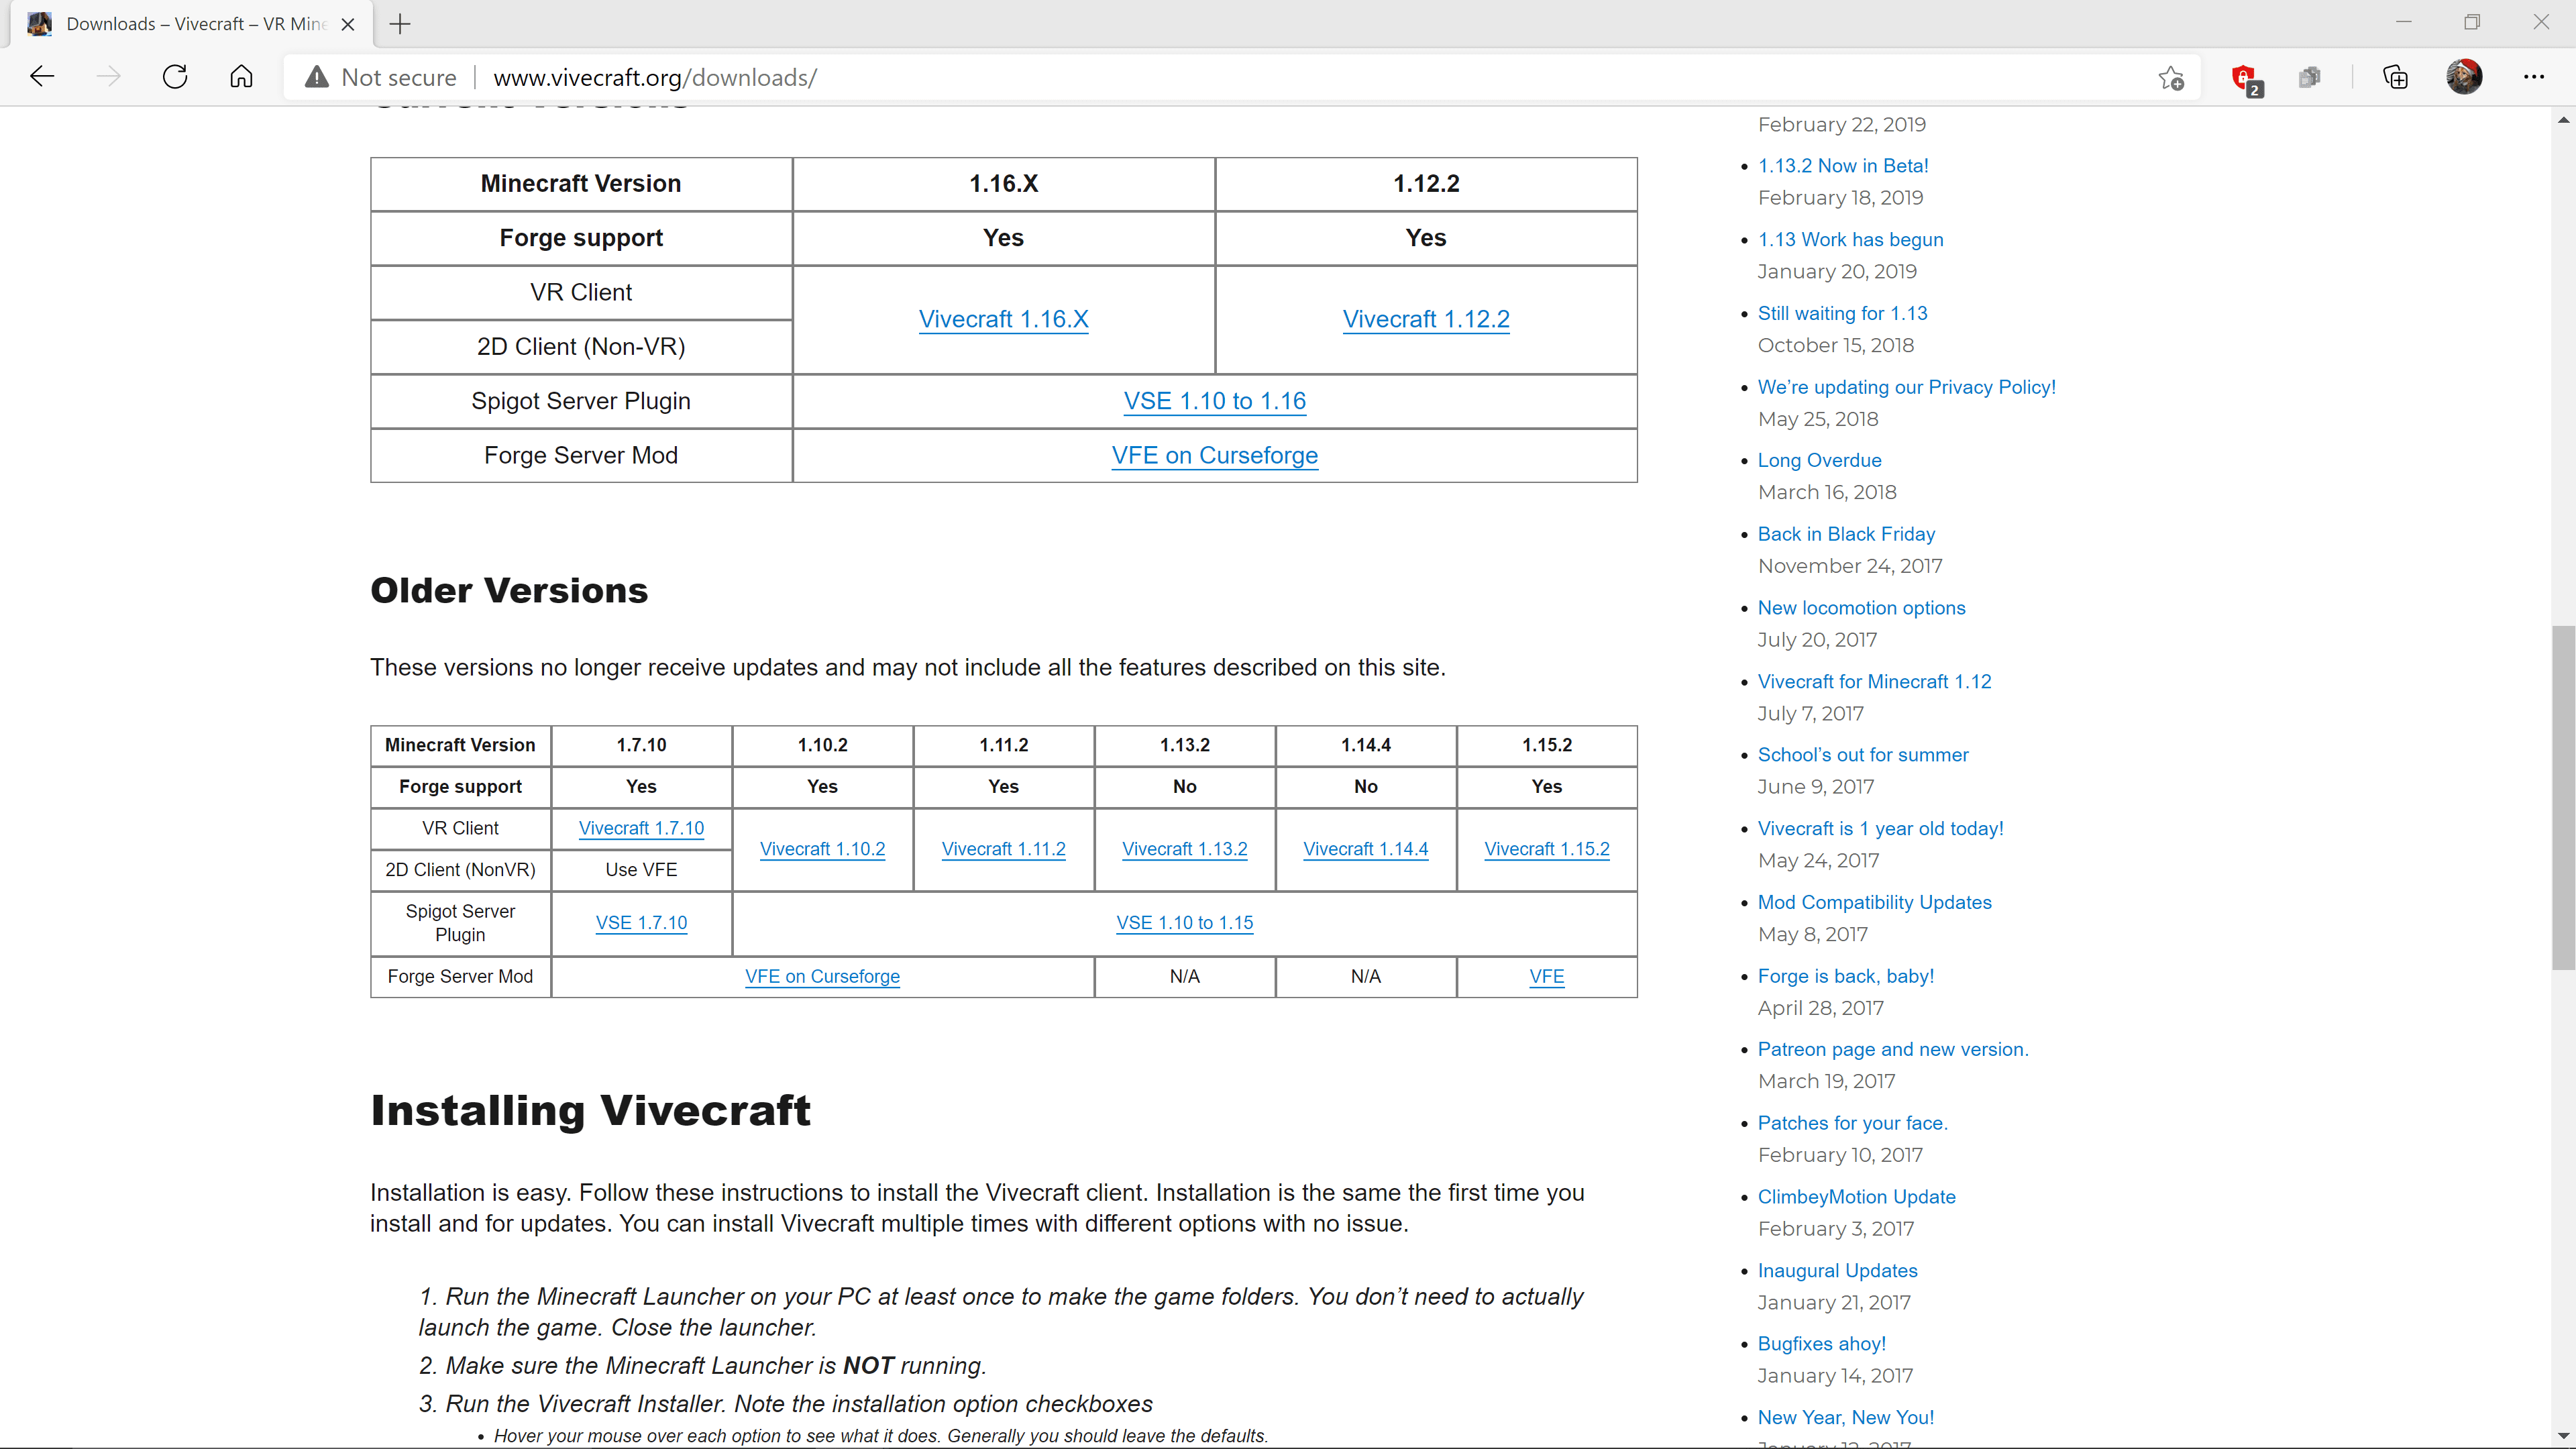 The Vivecraft website with Vivecraft 1.16.x highlighted.